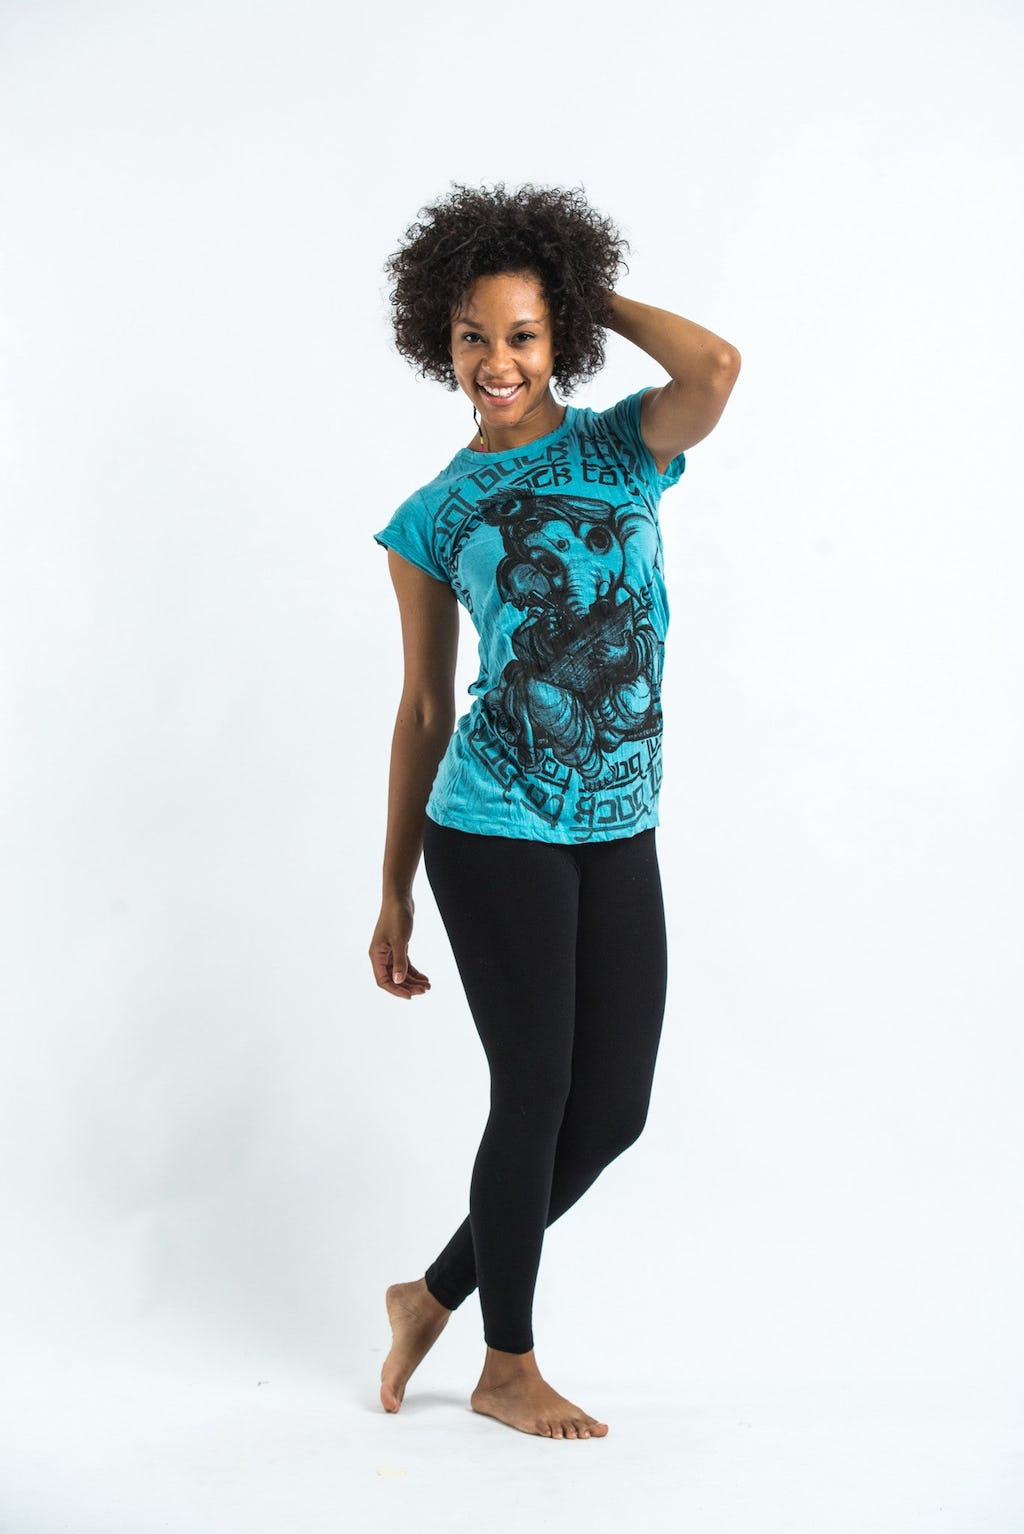 Sure design t shirts and clothing - Sure Design Womens Baby Ganesh T Shirt Turquoise